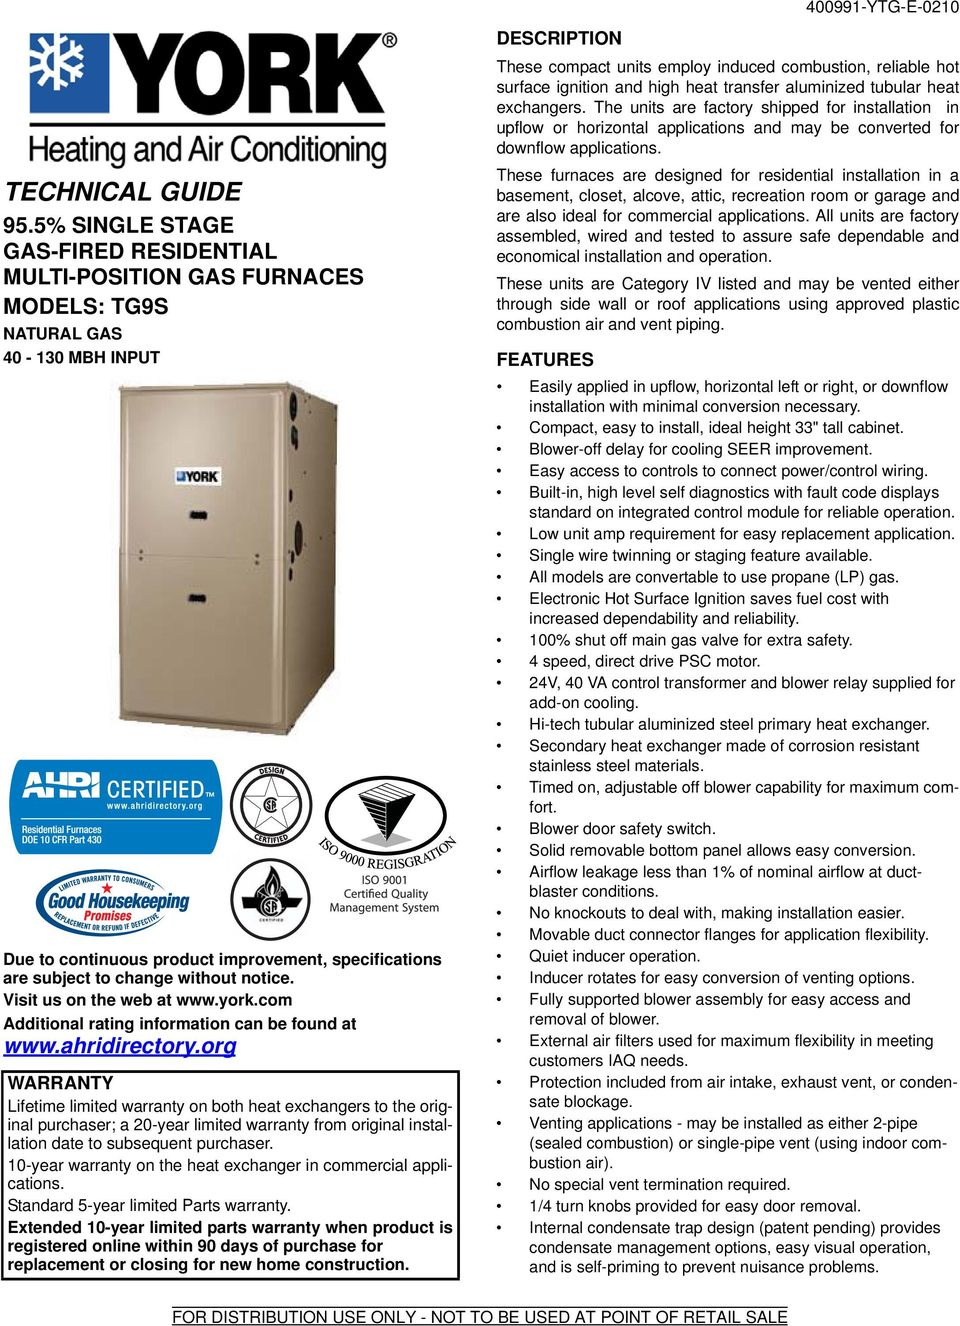 Technical Guide 955 Single Stage Gas Fired Residential Multi Natural Furnaces Wiring Visit Us On The Web At Yorkcom Additional Rating Information Can Be